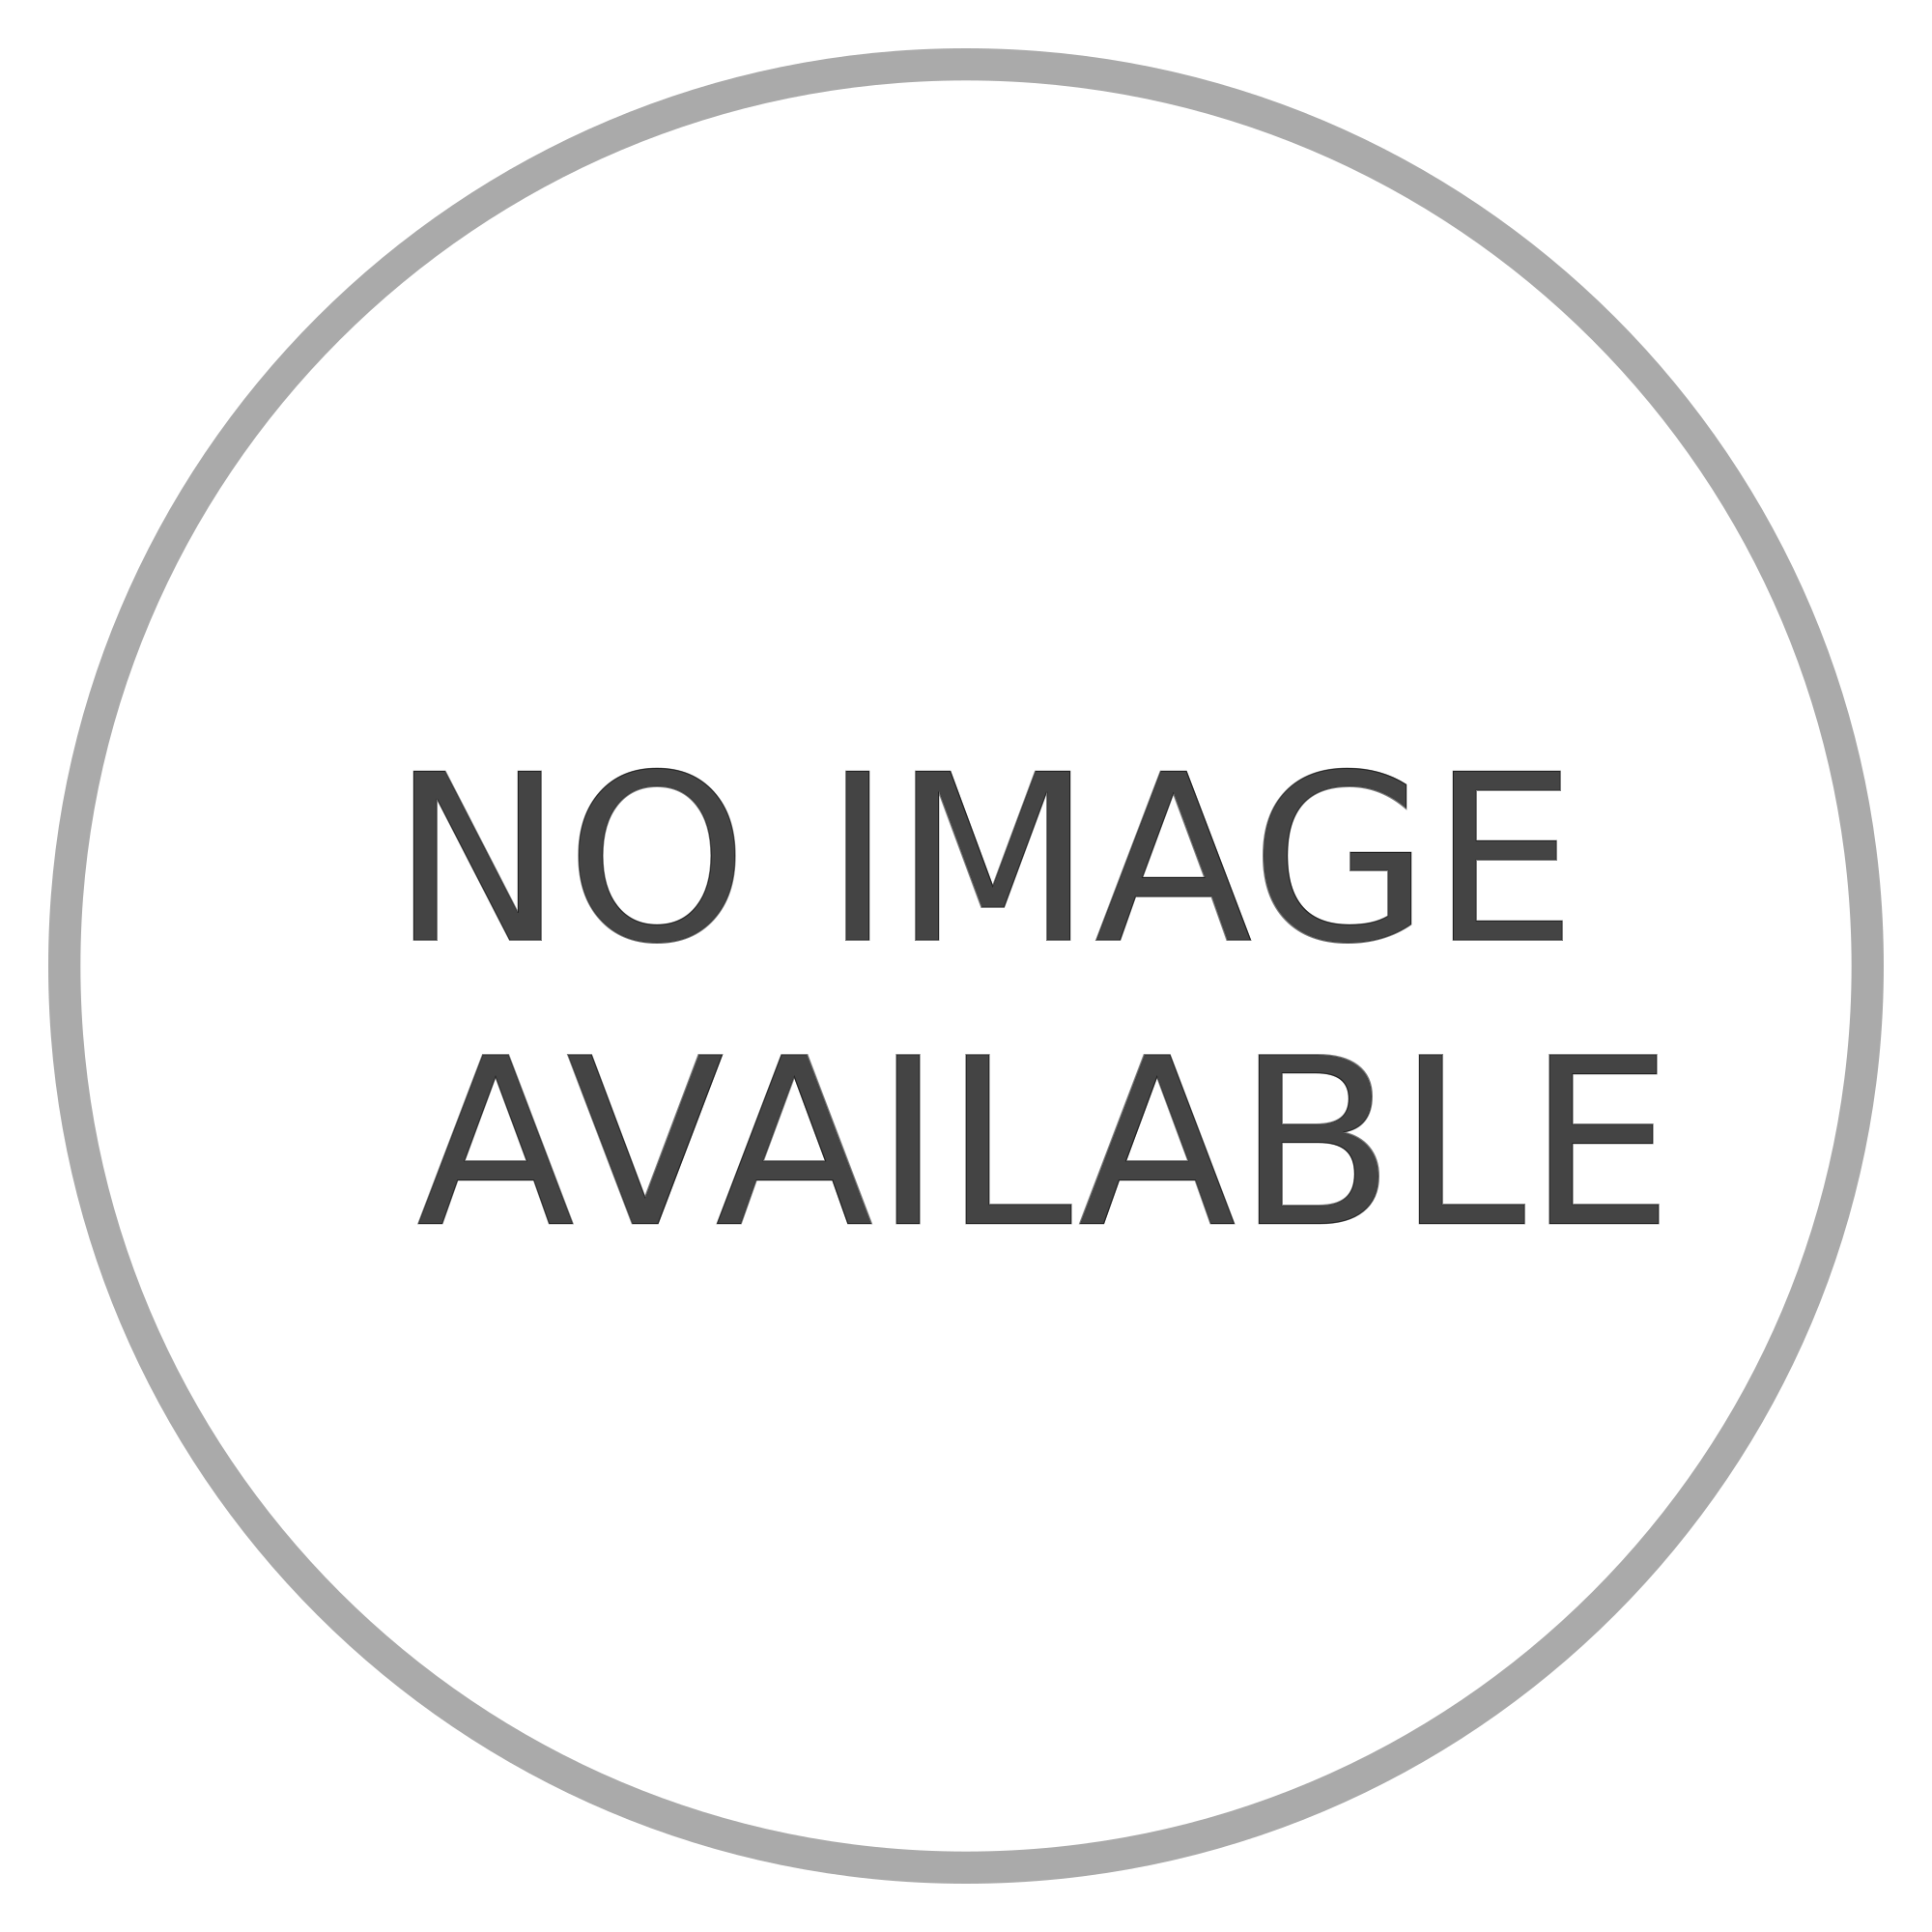 File svg wikimedia commons. No image available png clip art freeuse library